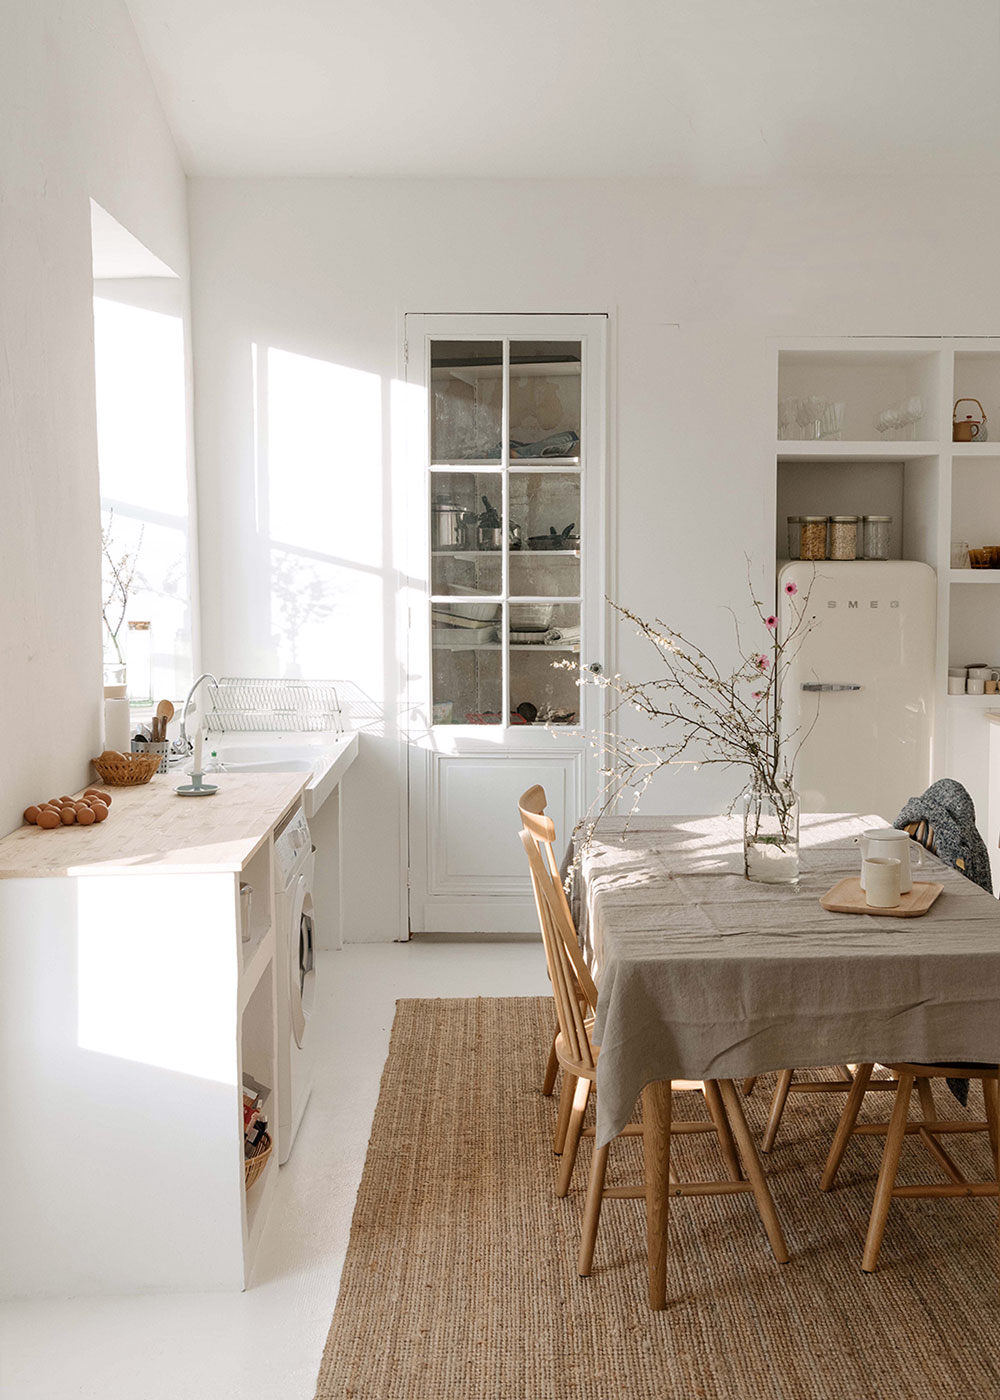 deconstructed kitchens // Olivia Thebault on sfgirlbybay // via the Grit and Polish